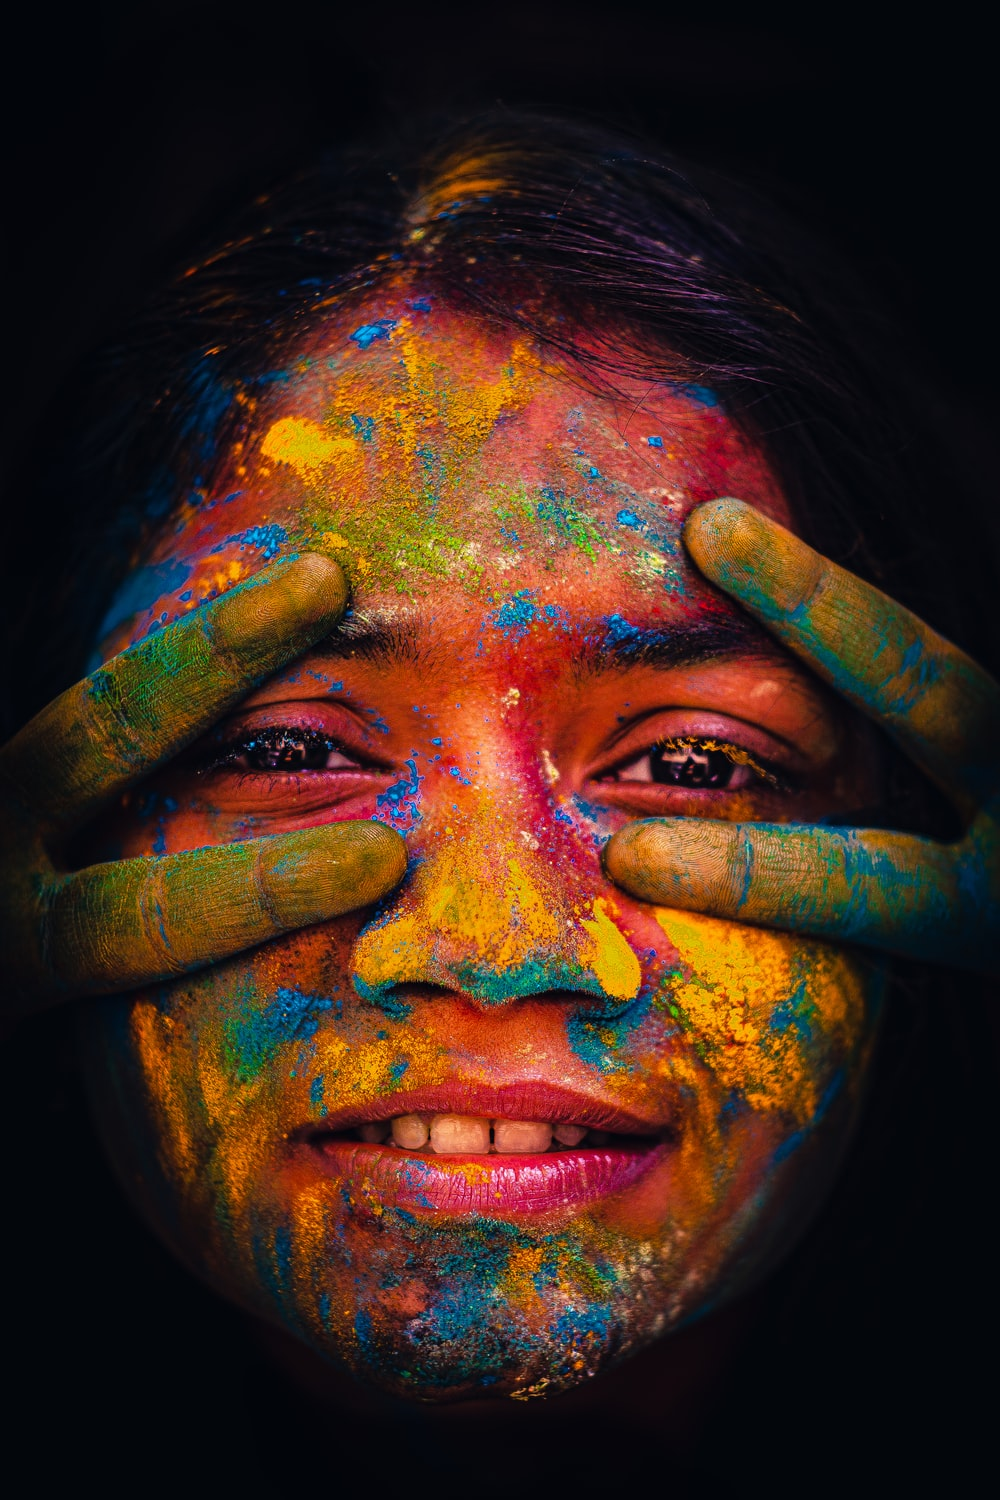 woman with blue and green paint on face